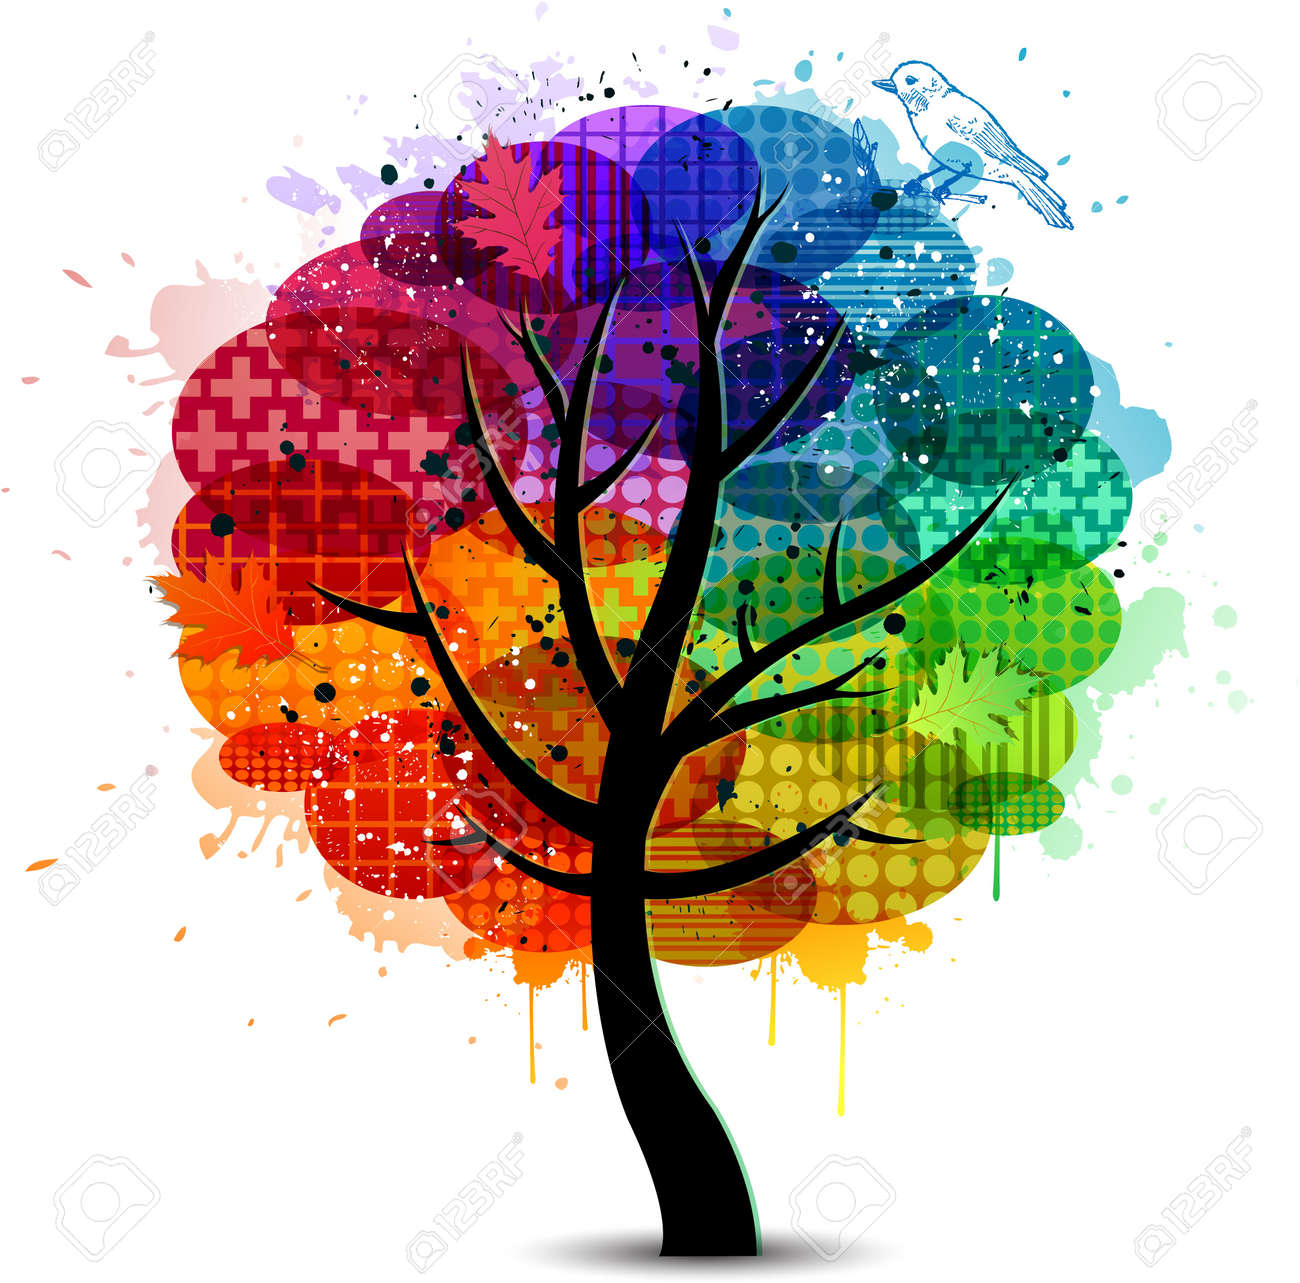 abstract colorful tree design background and banner stock vector 14578946